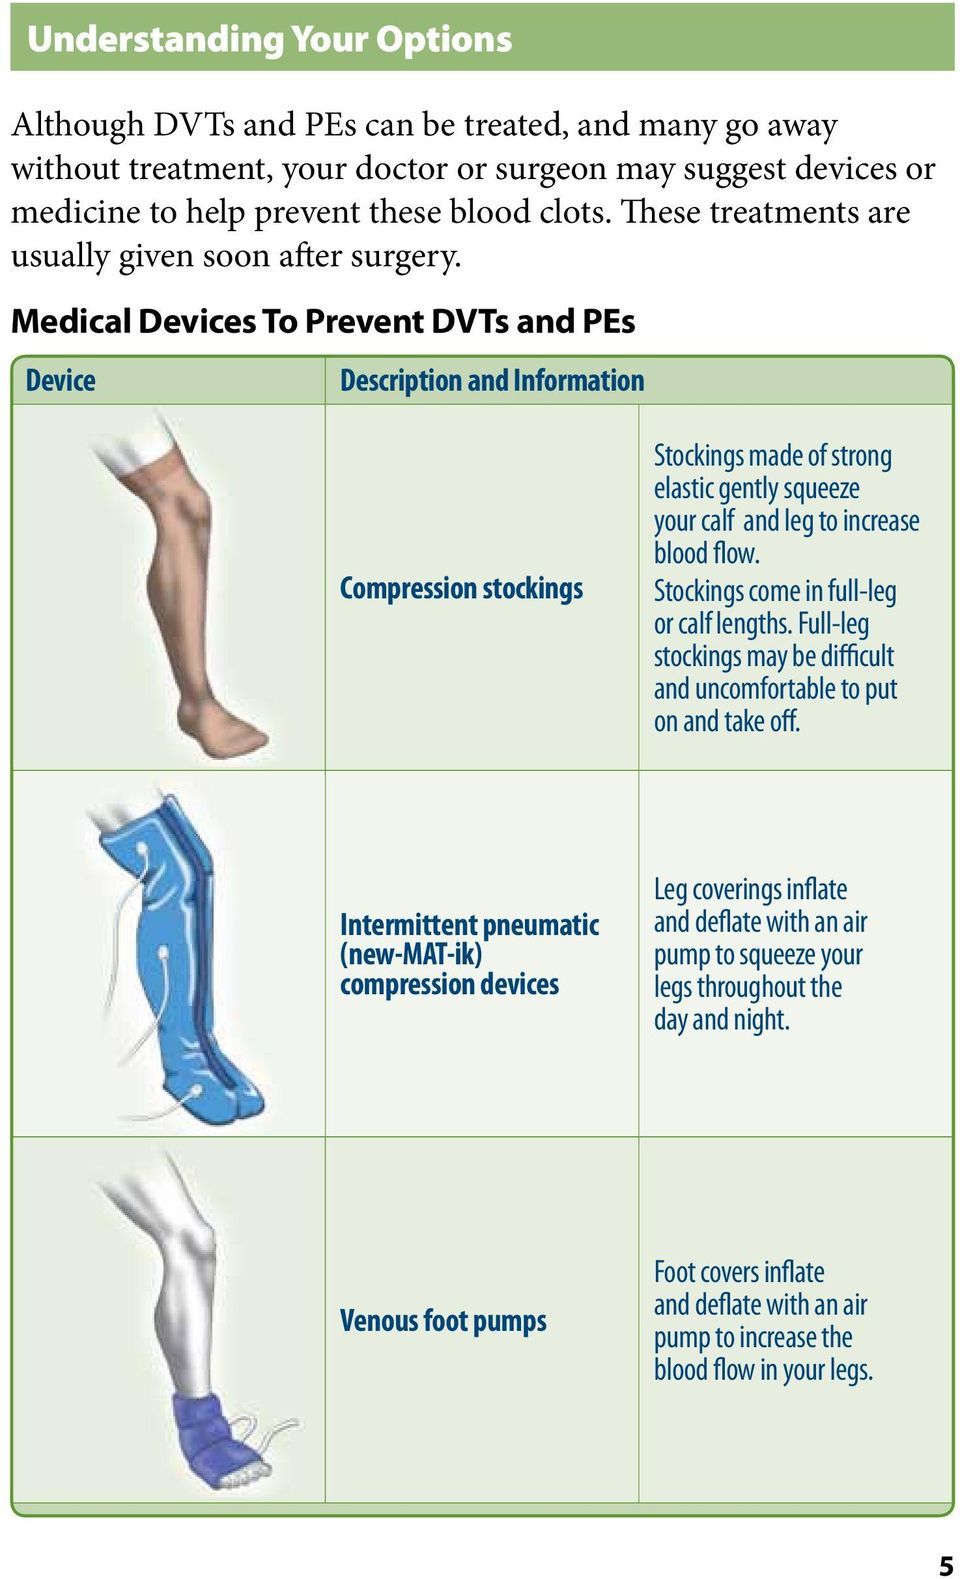 Medical Devices To Prevent DVTs and PEs Device Description and Information Compression stockings Stockings made of strong elastic gently squeeze your calf and leg to increase blood flow.